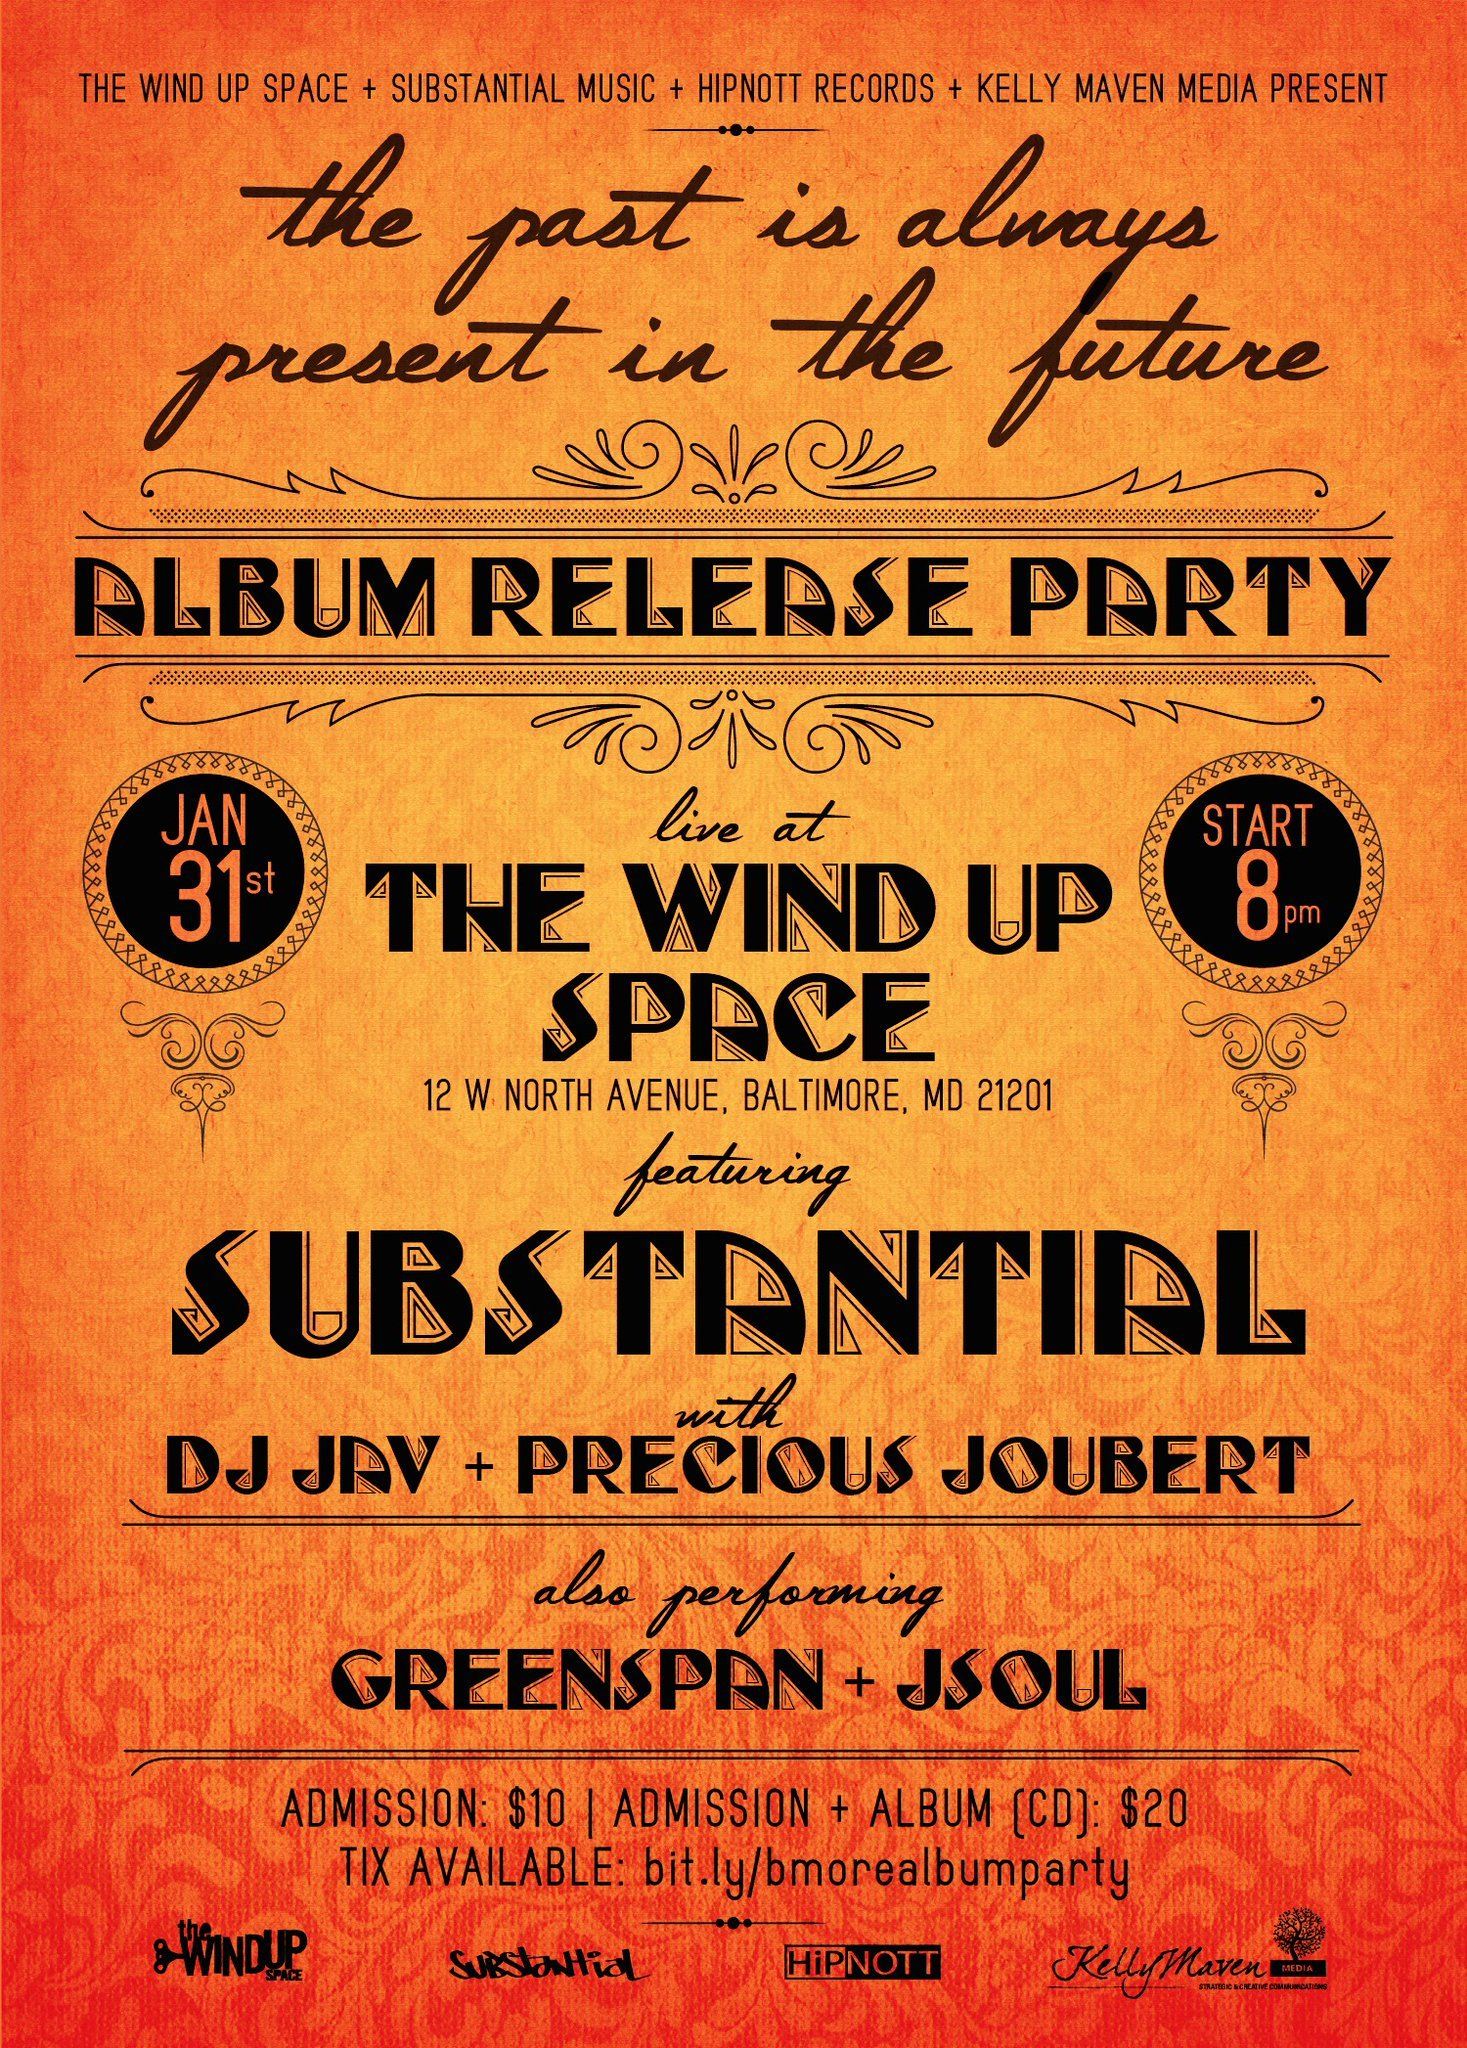 Substantial Album Release Party - January 31 - Baltimore